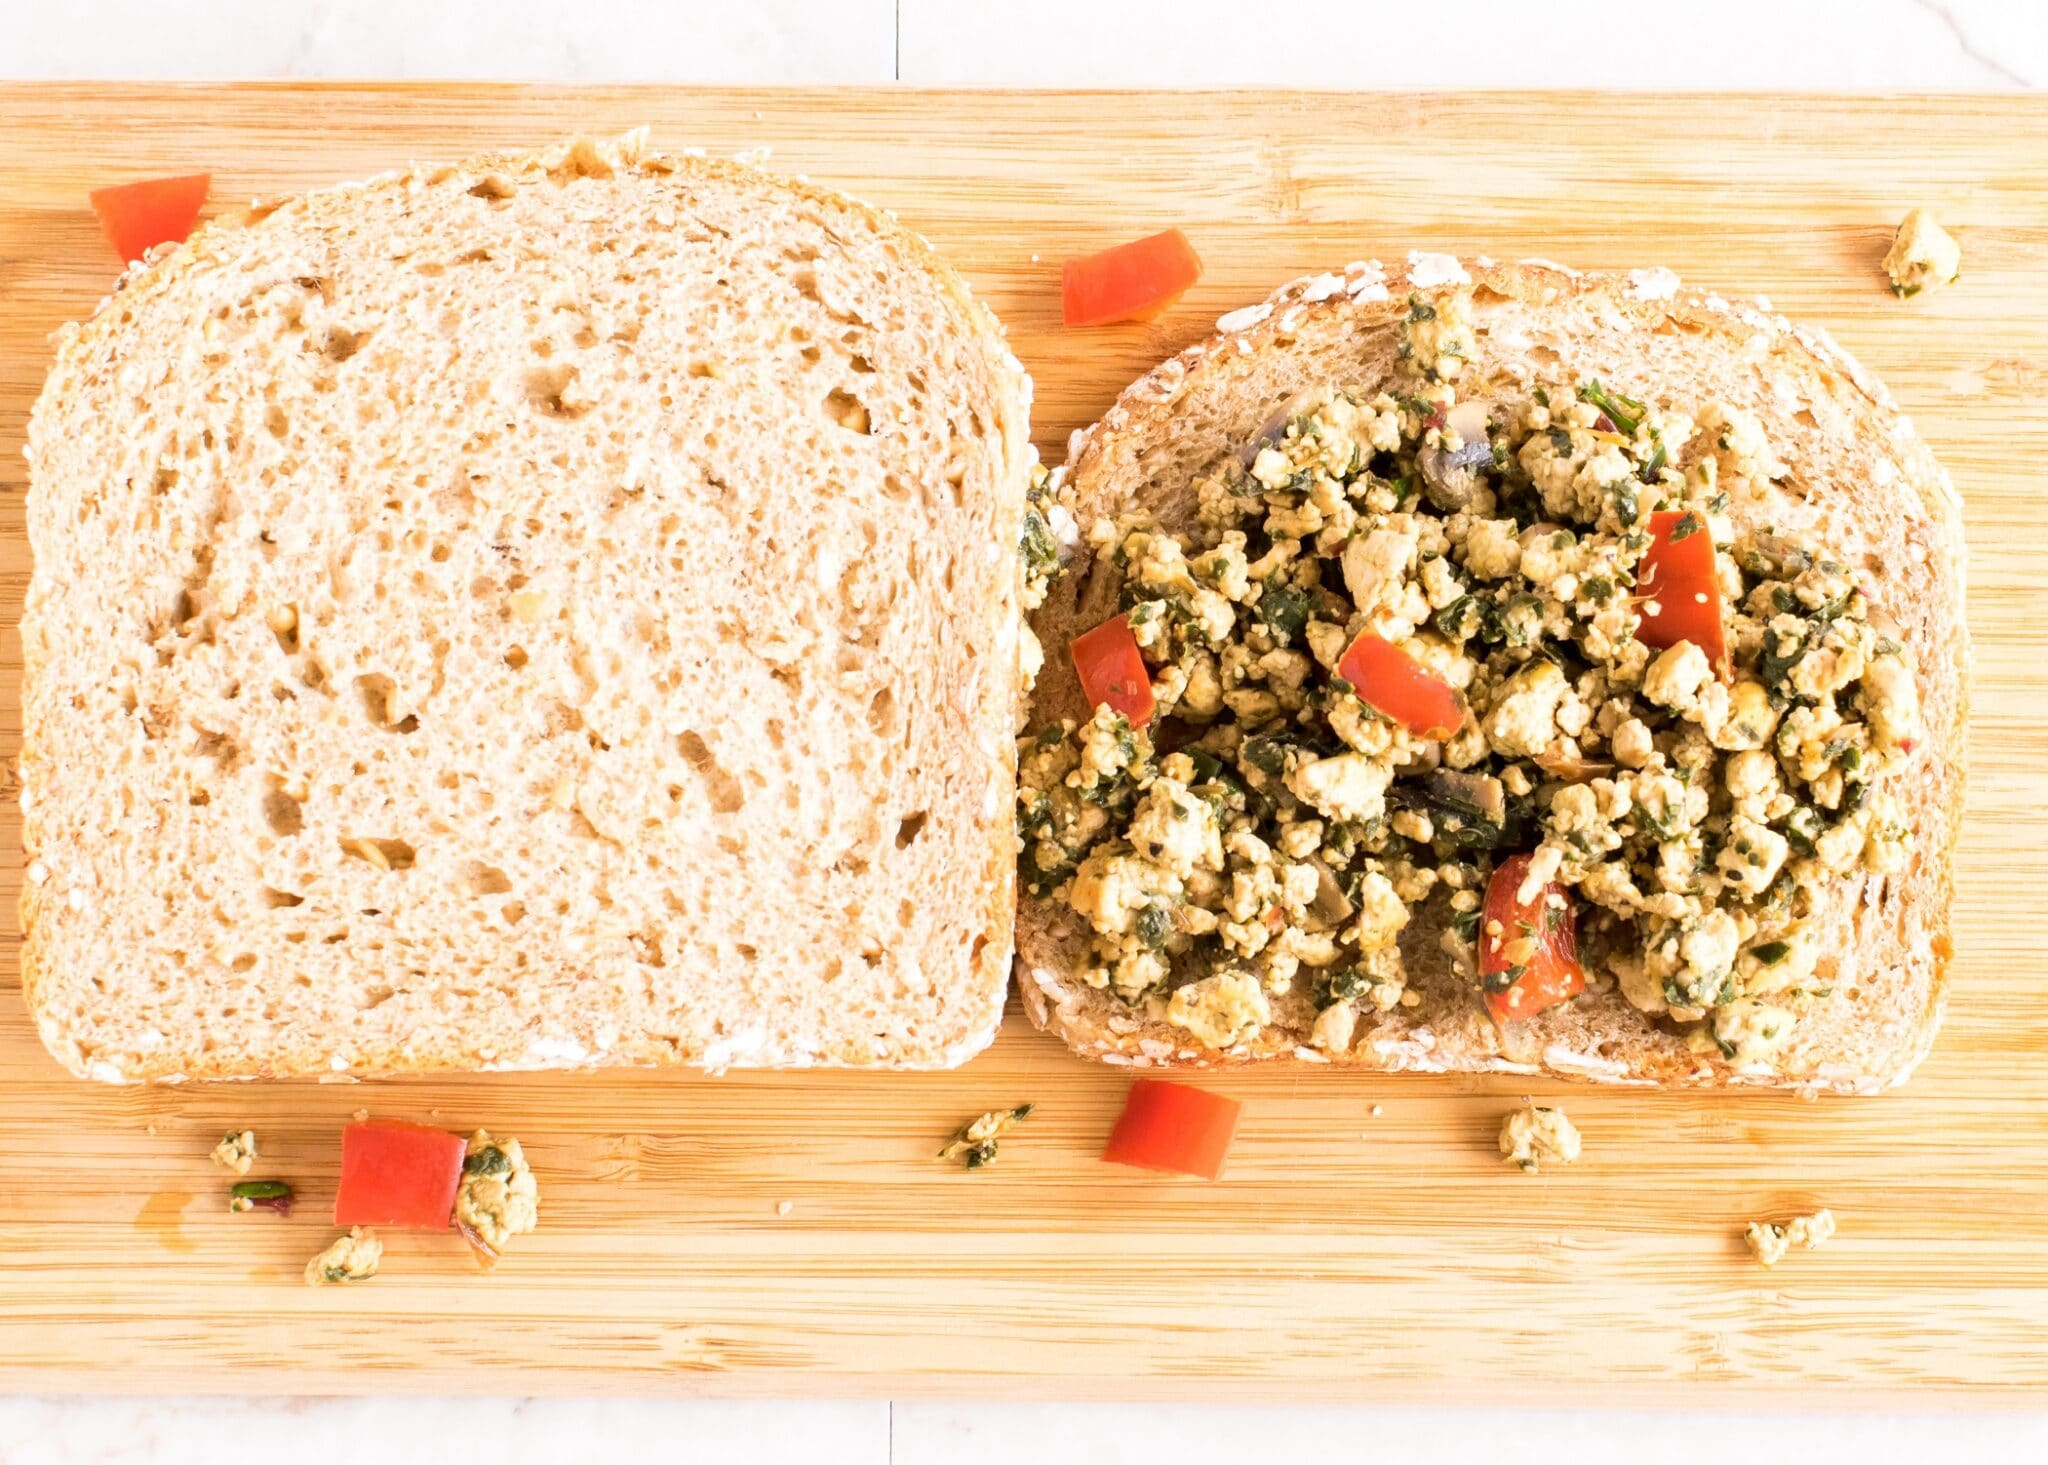 Tofu Red Chard Scramble Sandwich | delicious vegan breakfast or back to school lunch idea with vibrant colors and immense health | kiipfit.com